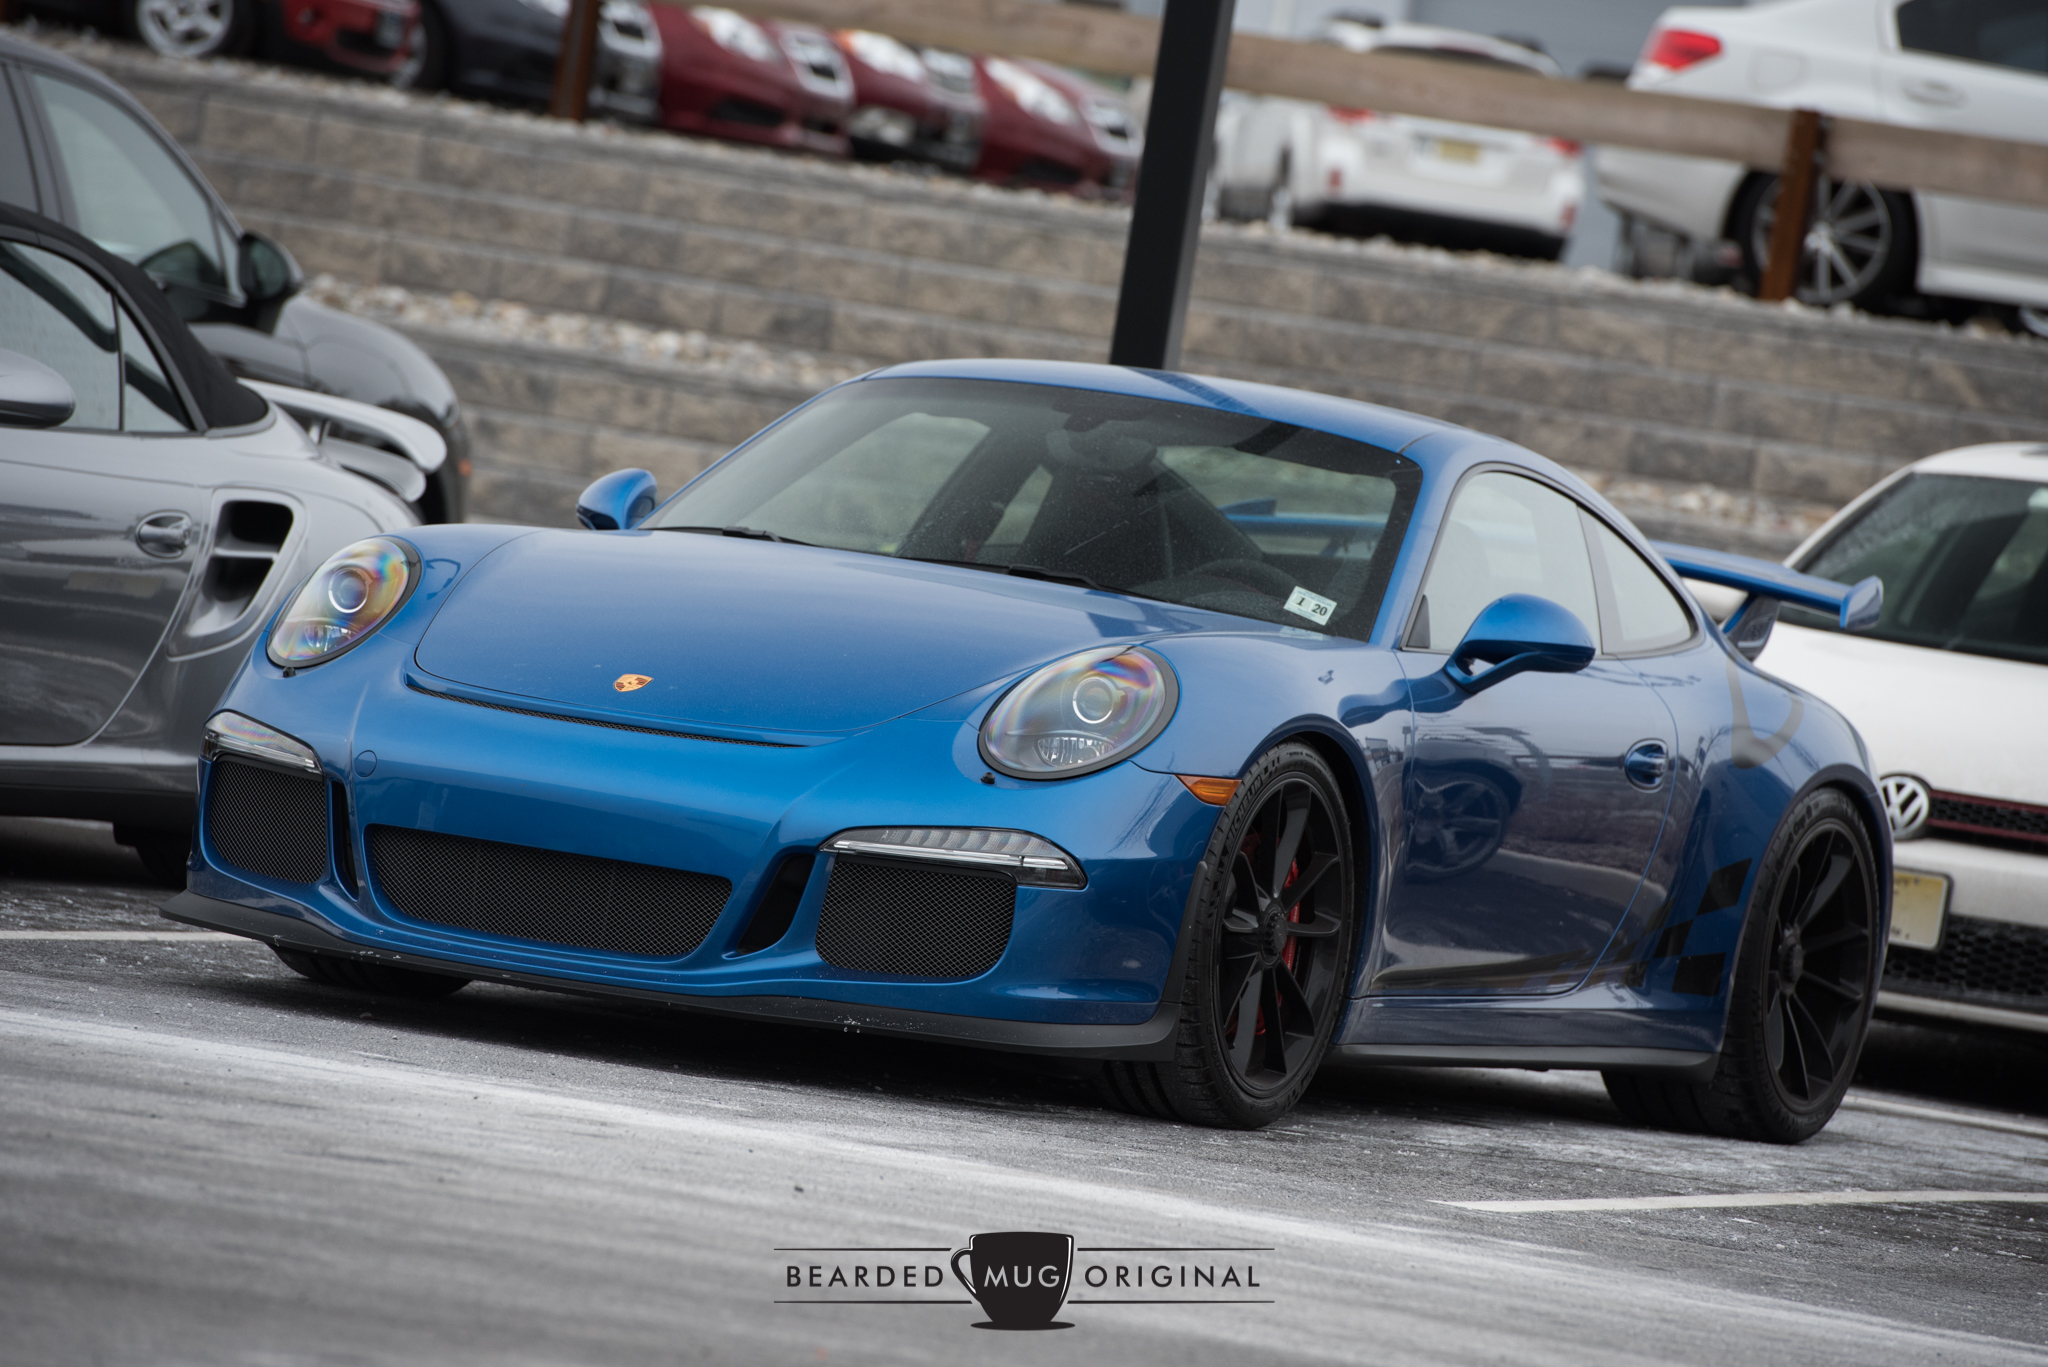 Why not finish out with a 991 GT3 in a stunning Sapphire Blue Metallic?